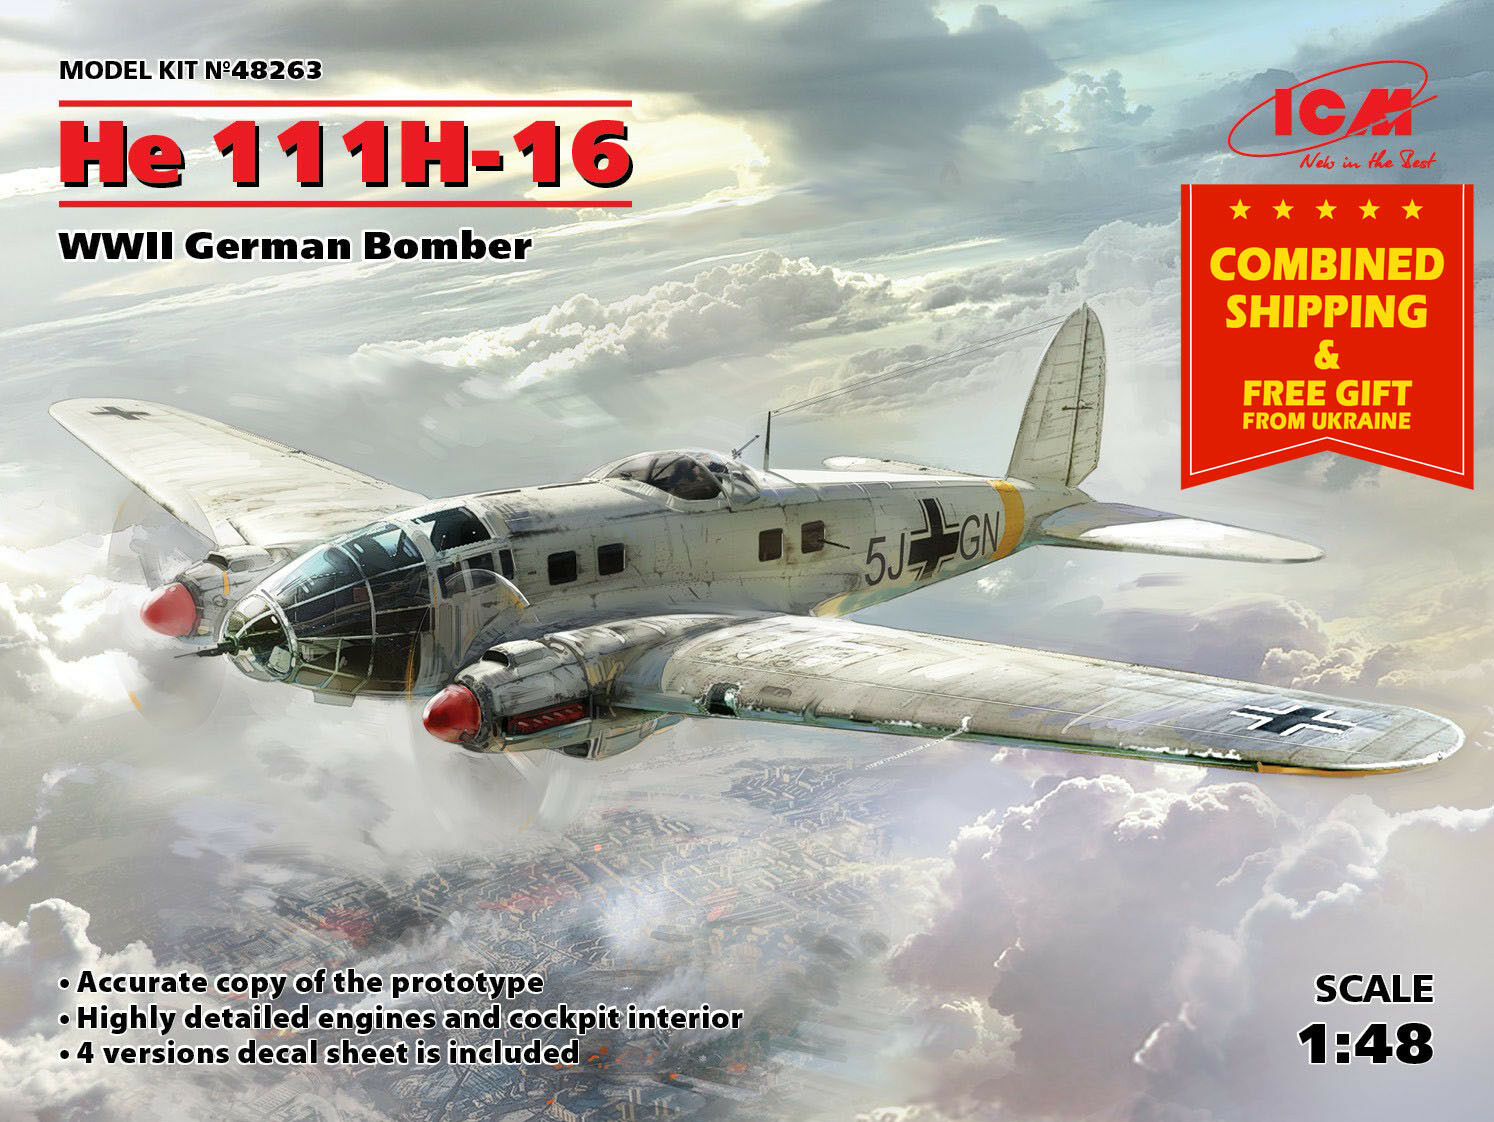 GERMAN BOMBER HE 111H-16, PLASTIC MODEL BUILDING AIRPLANE WWII, 1 48 ICM 48263